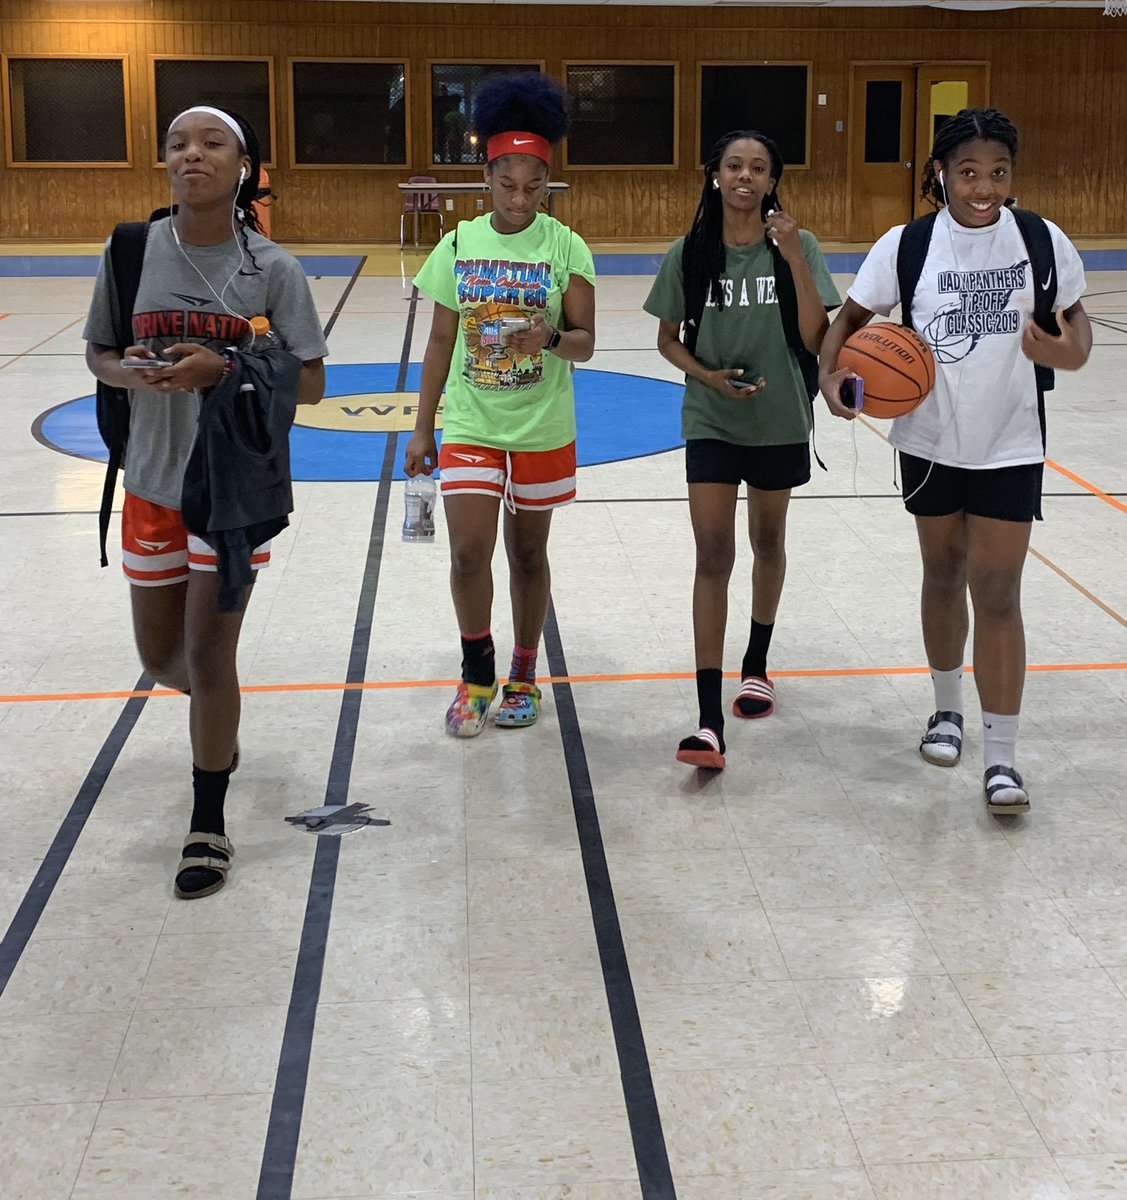 Louisiana U 2025...The girls got some good work in; chemistry is 🔑...... #LAUfam #grassrootsbasketball #louisianabasketball #UA #TexasU #UAfuture #GUAA https://t.co/dKTDdtmGen